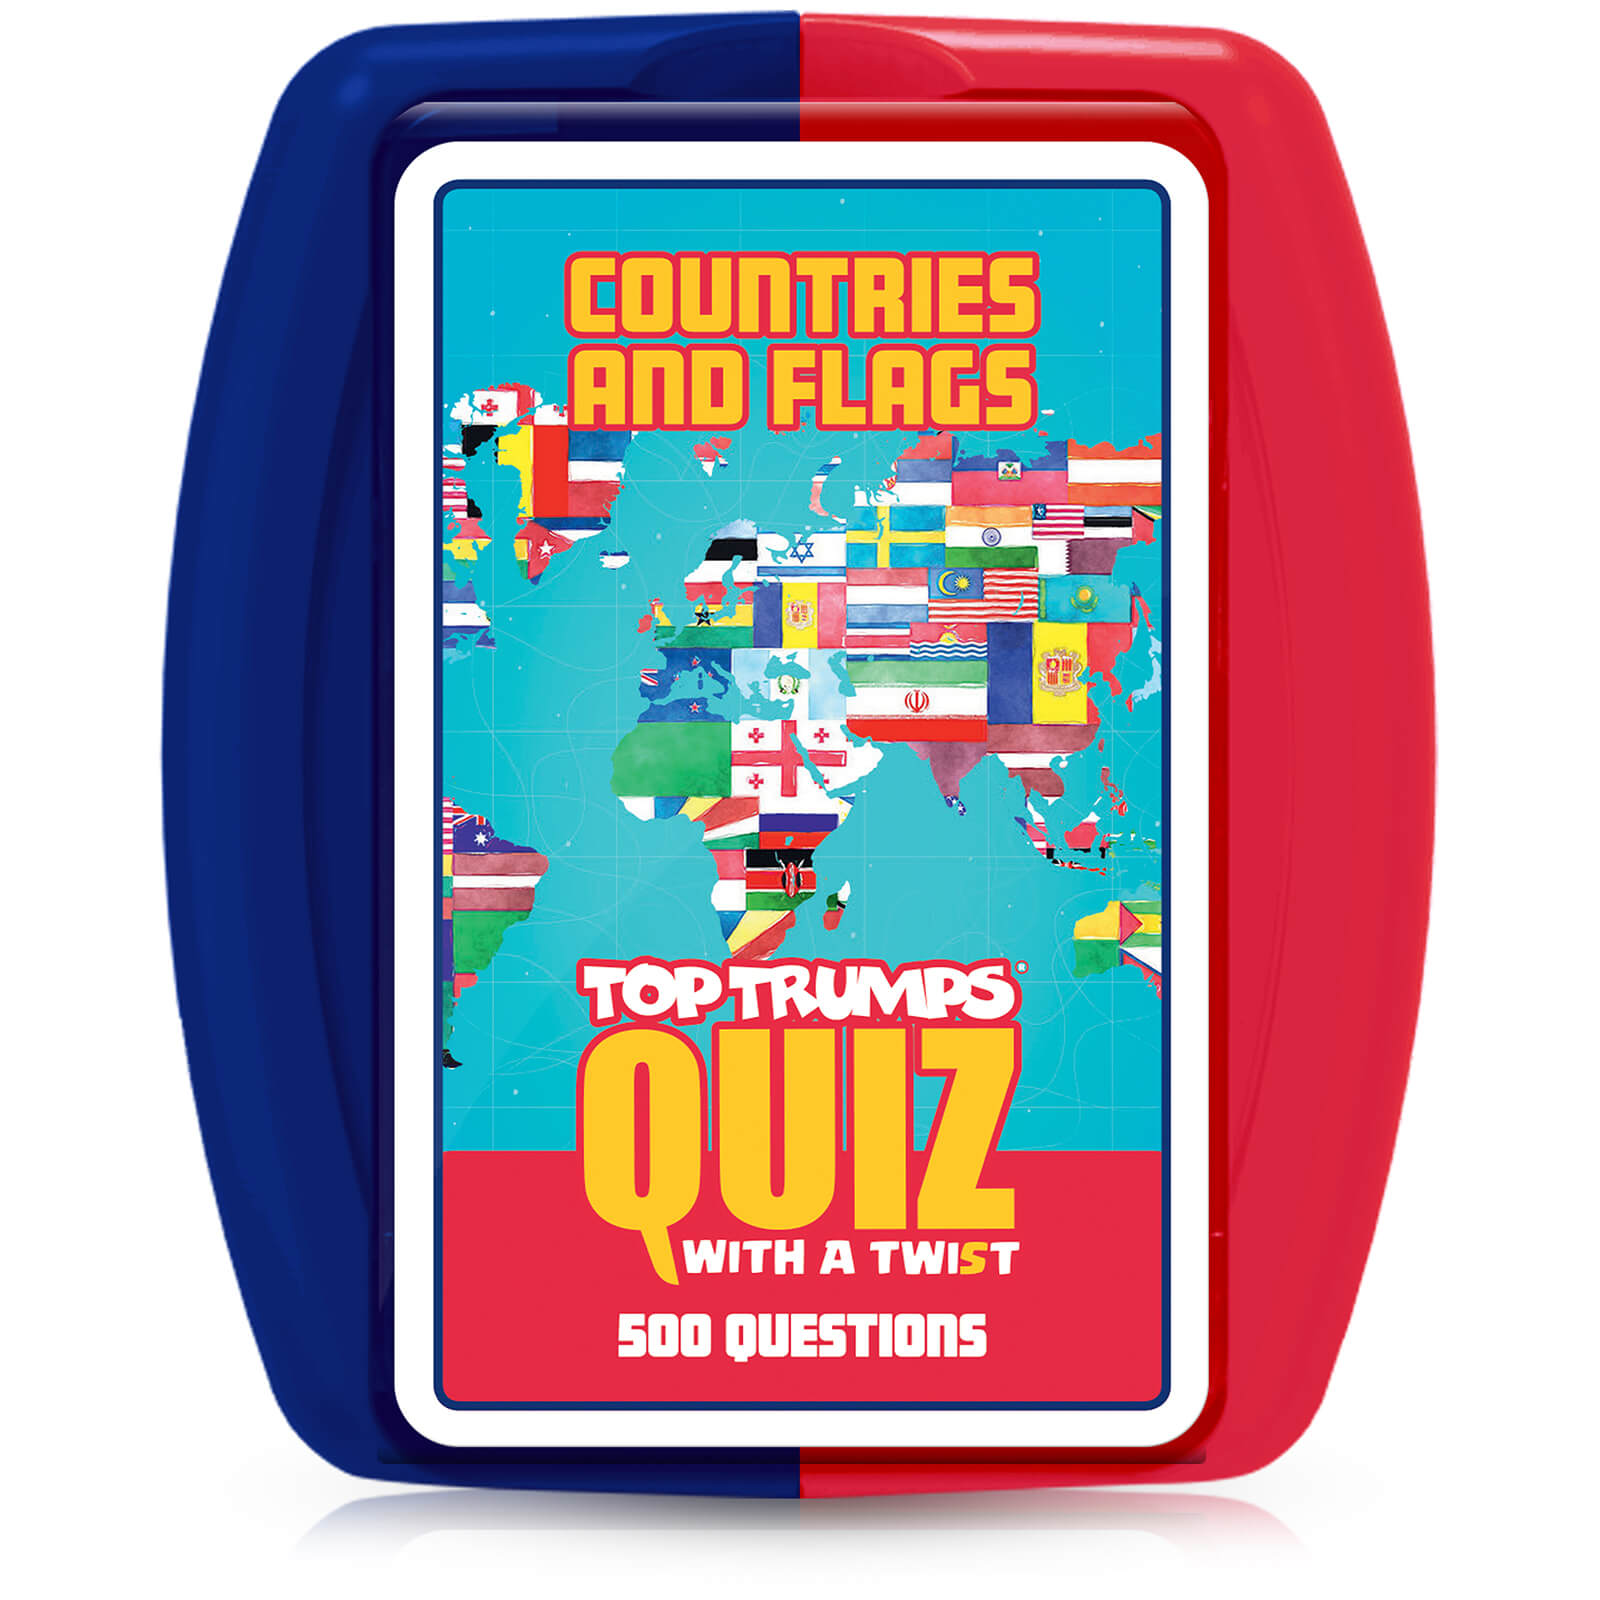 Image of Top Trumps Quiz Game - Countries and Flags Edition